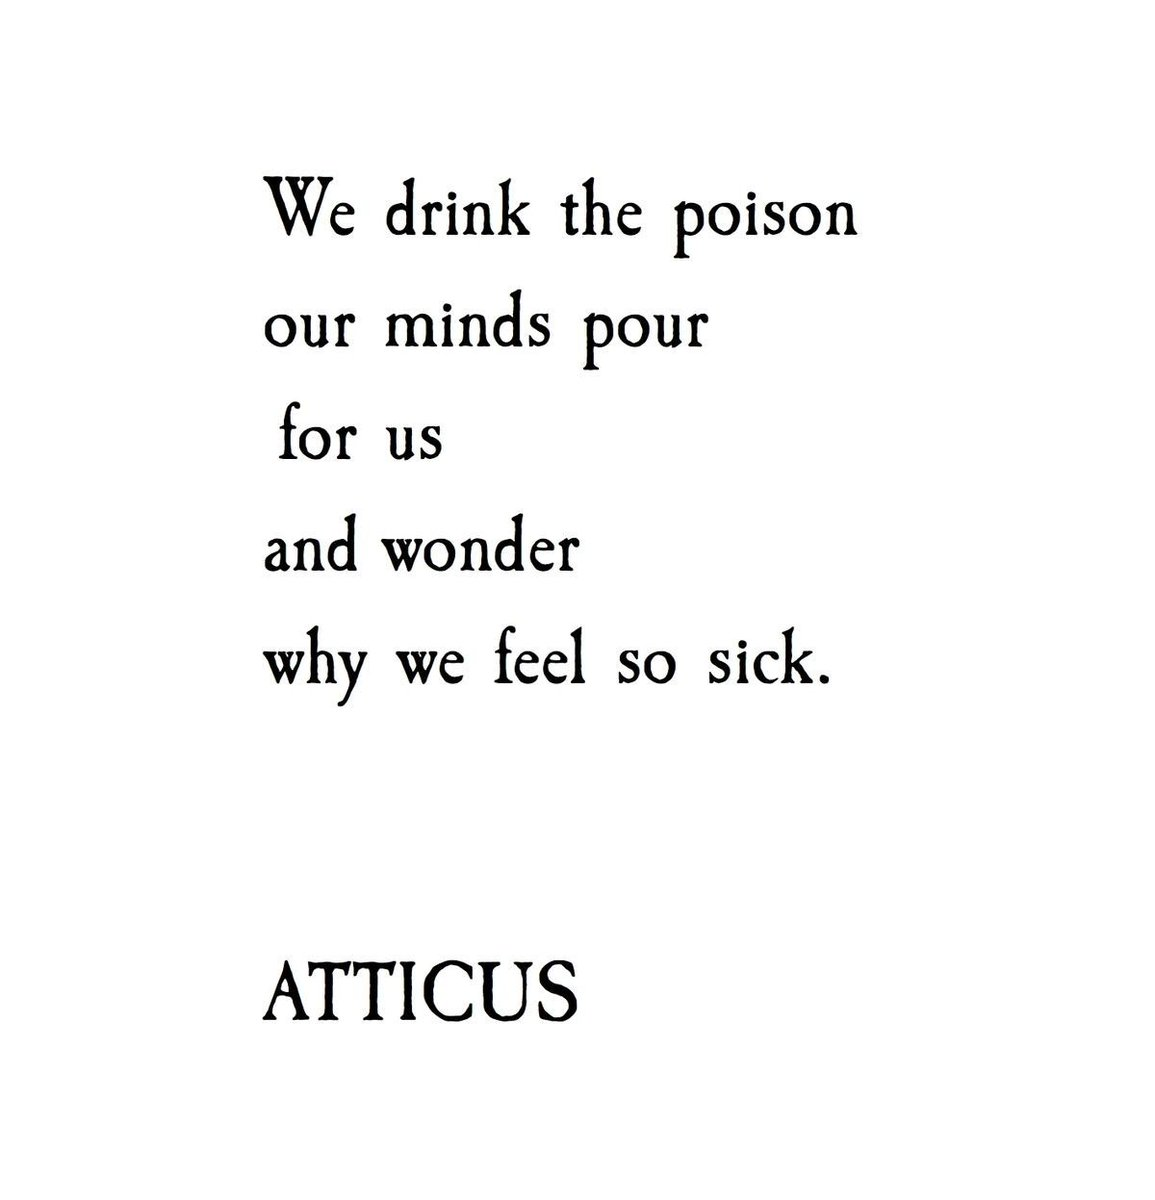 We drink the poison our minds pour...  #mondaymotivation <br>http://pic.twitter.com/vRCWviHqav